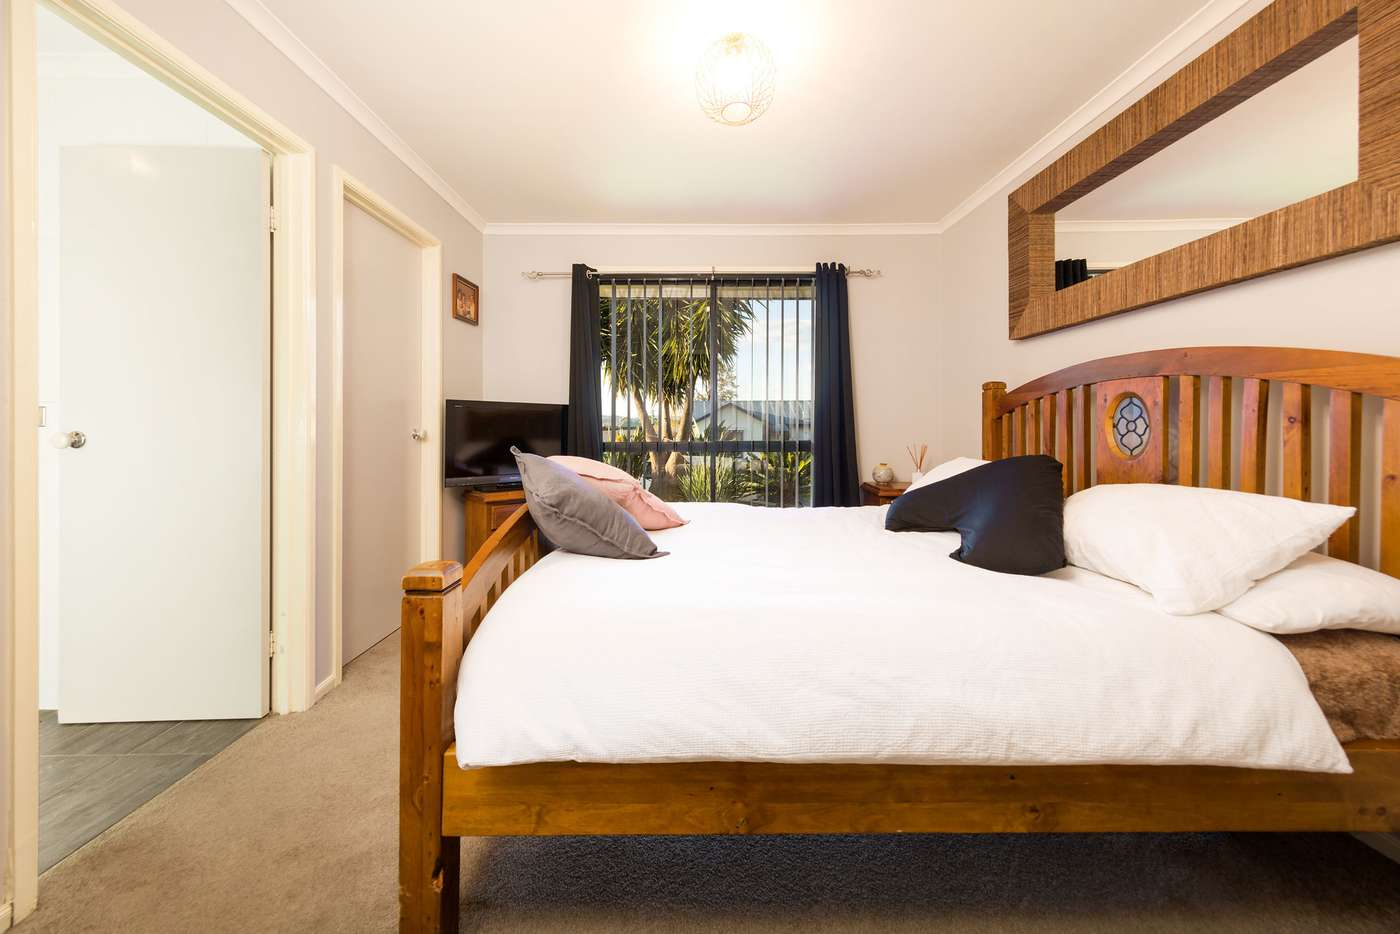 Sixth view of Homely house listing, 22 Samantha Terrace, Wodonga VIC 3690